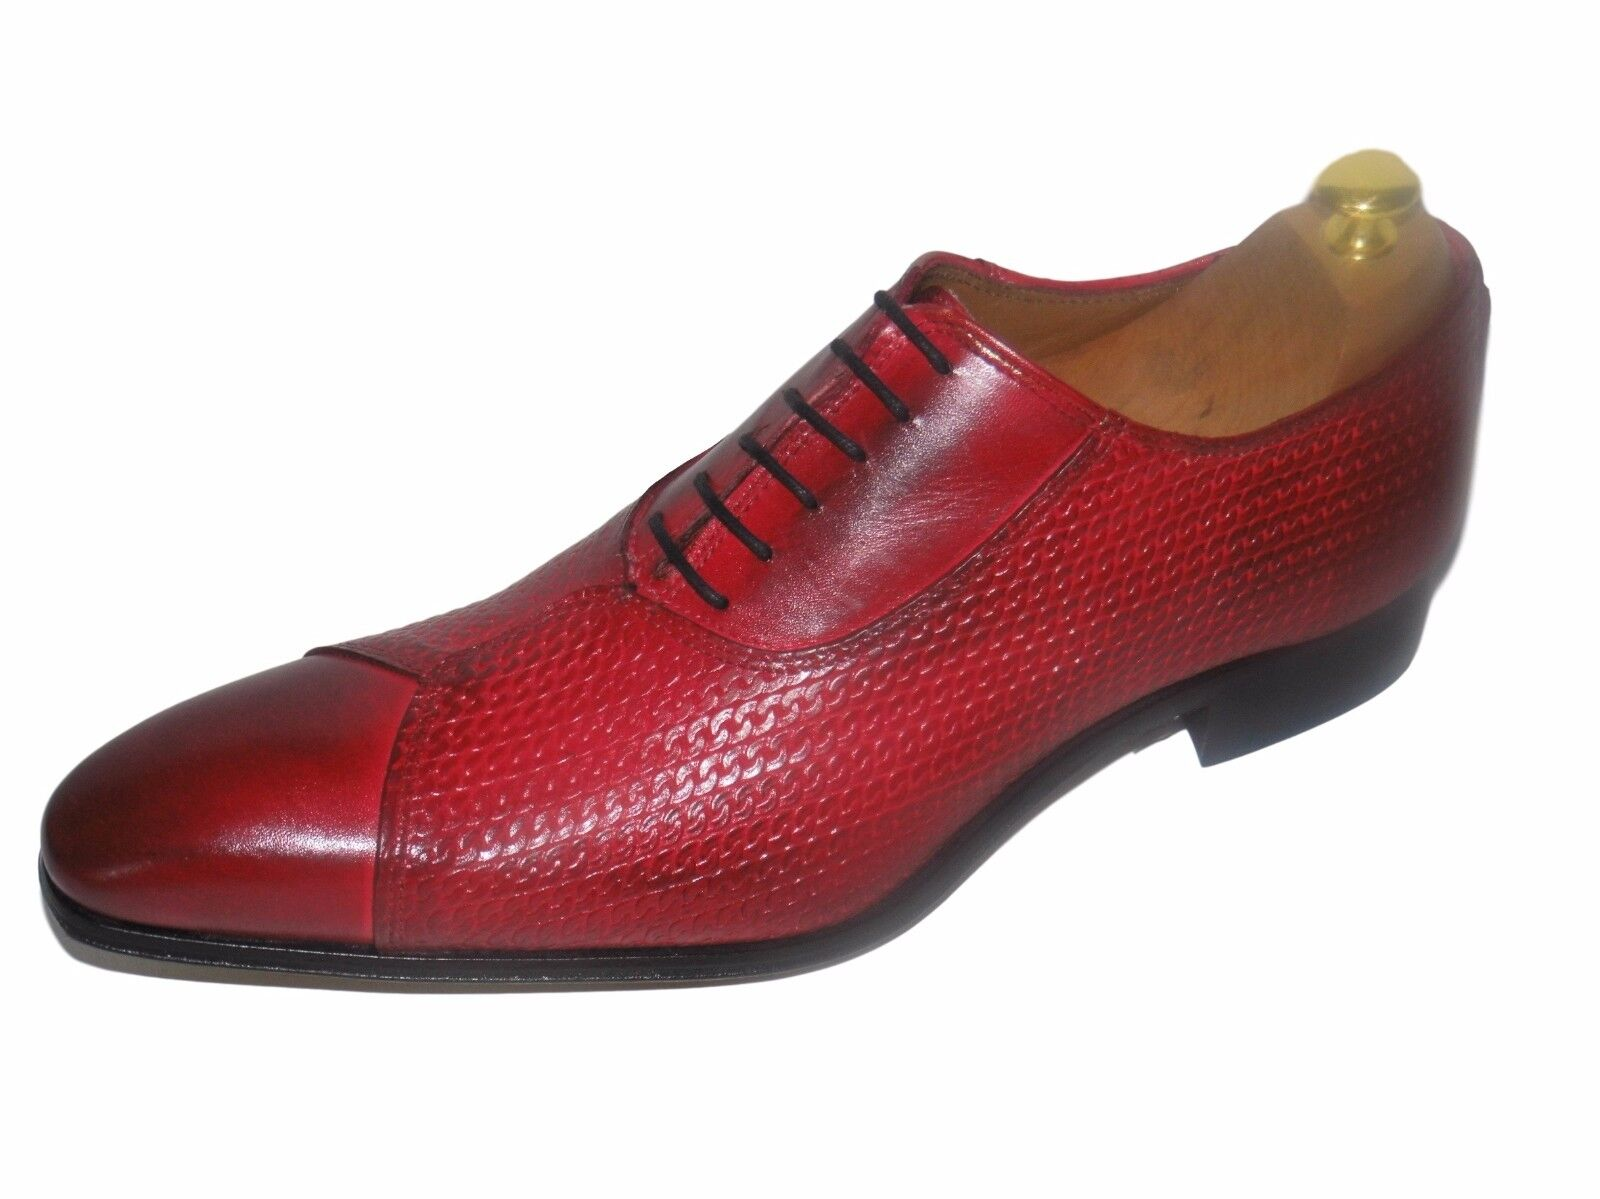 CHAUSSURE GRANULÉ ITALIENNE LUXE HOMME NEUF CUIR GRANULÉ CHAUSSURE ROUGE COUSU MAIN abefd8